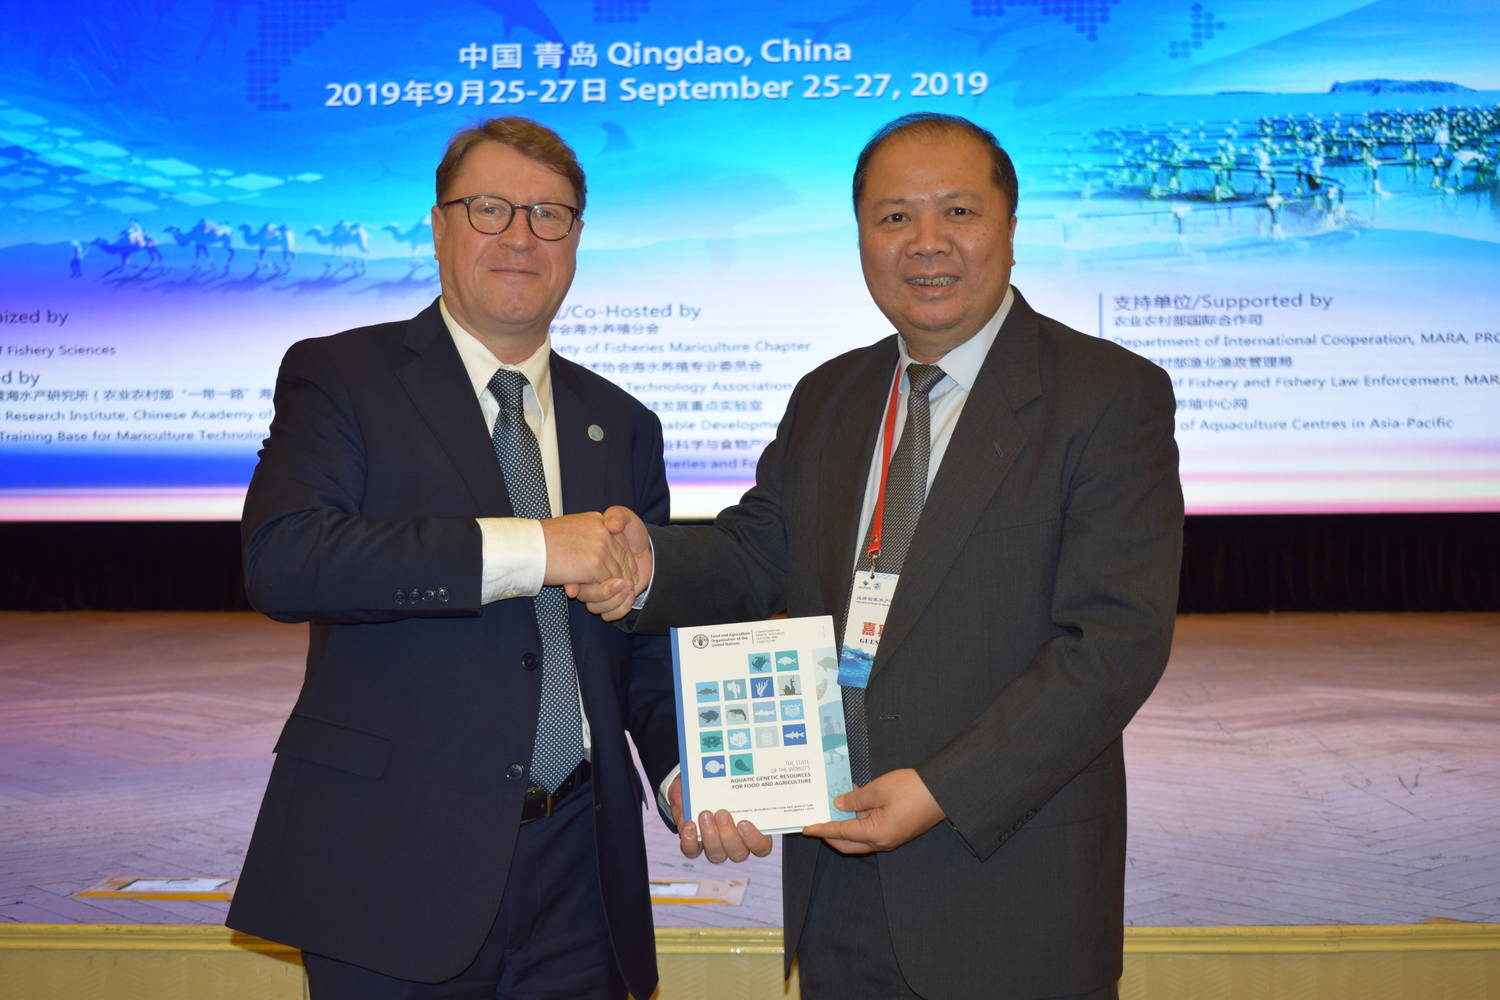 FAO expert: China's achievements in food security, alleviation of poverty extraordinary